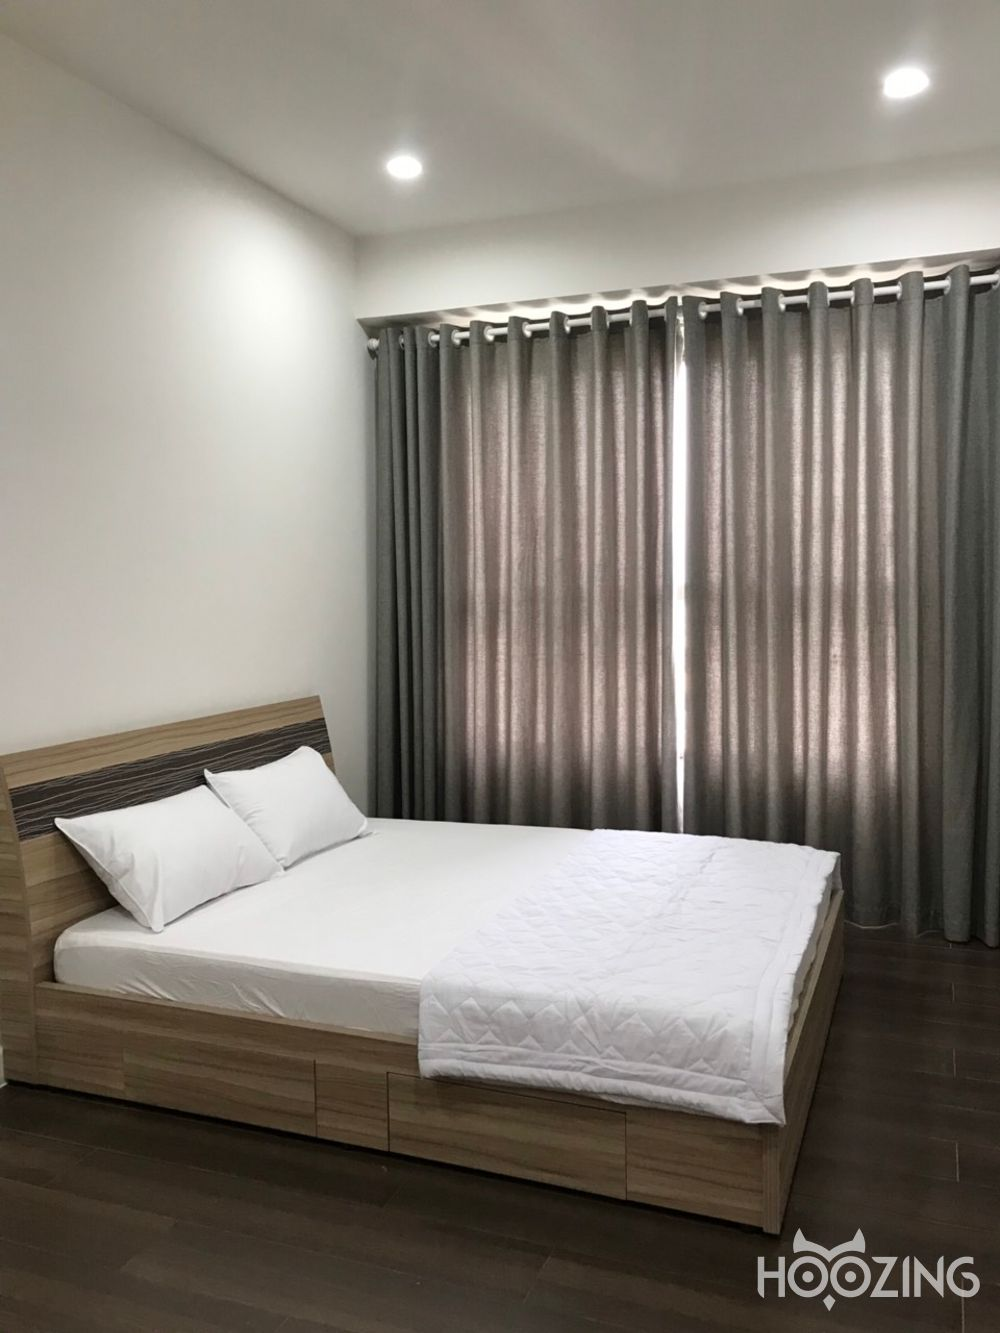 Sun Avenue Office-tel Apartment 1 Bedroom - Fully Furnished & Decent